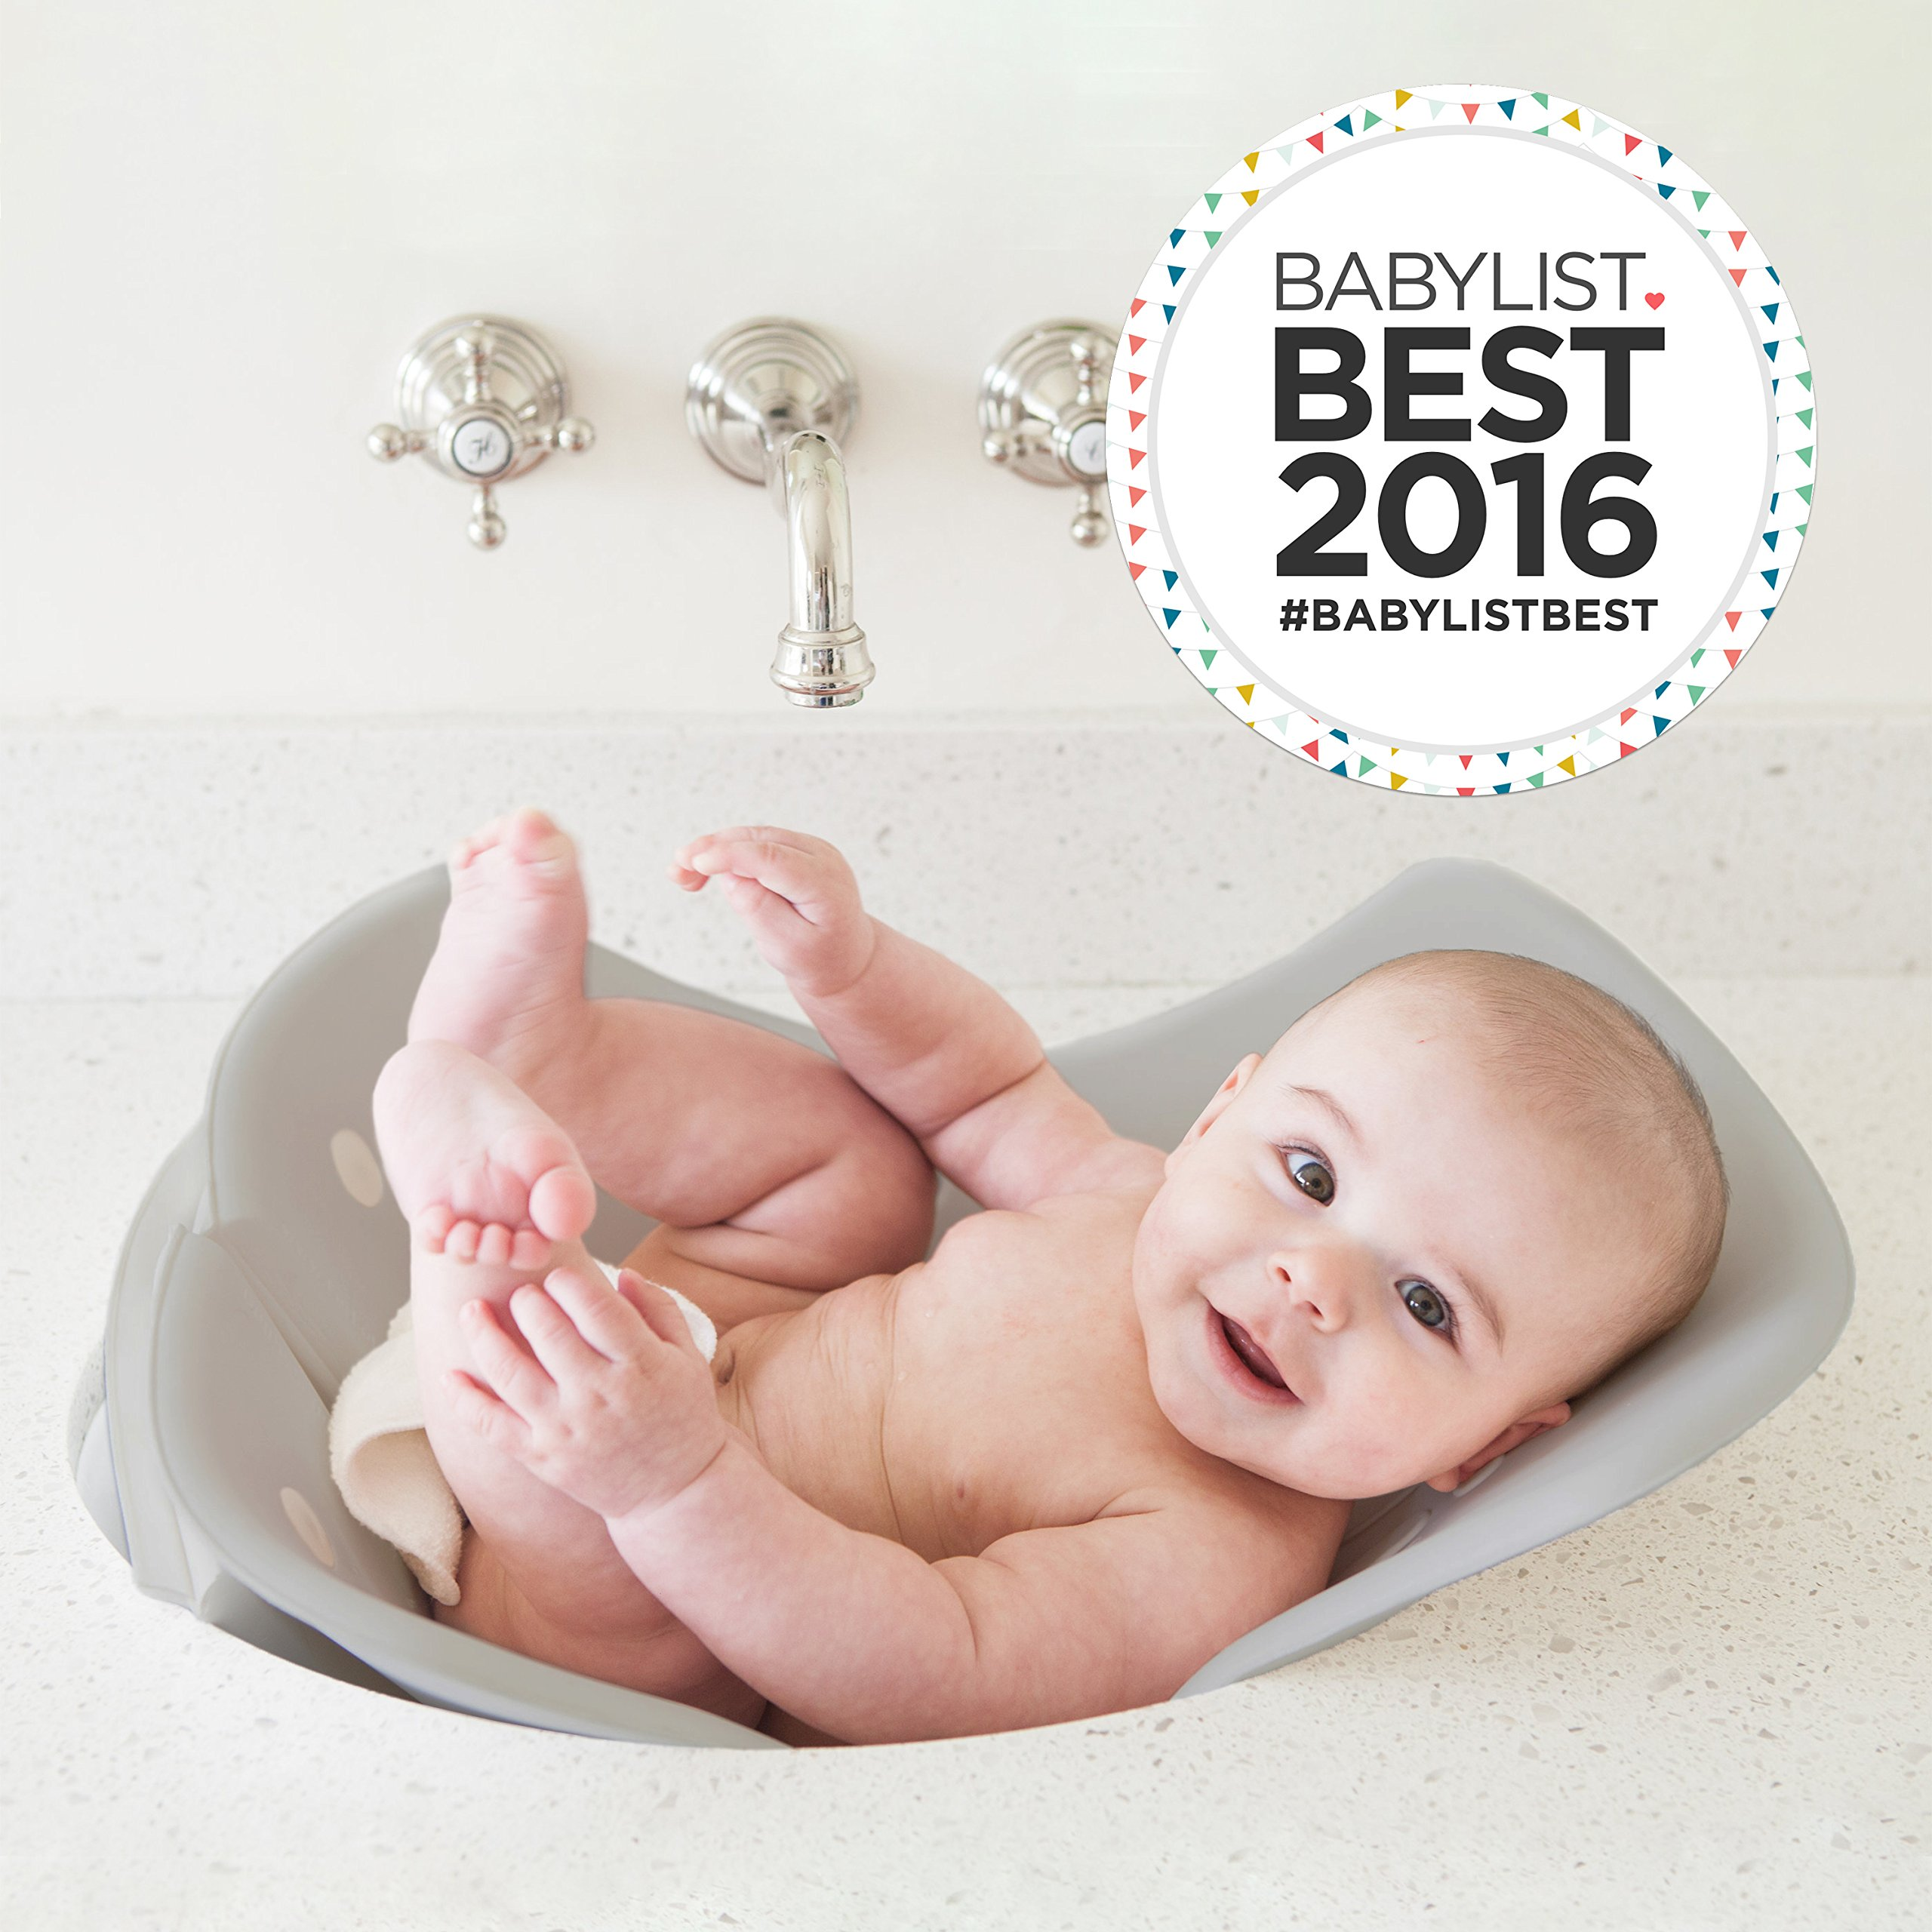 Puj Tub - The Soft, Foldable Baby Bathtub - Newborn, Infant, 0-6 Months, In-Sink Baby Bathtub, BPA free, PVC free (Grey) by Puj